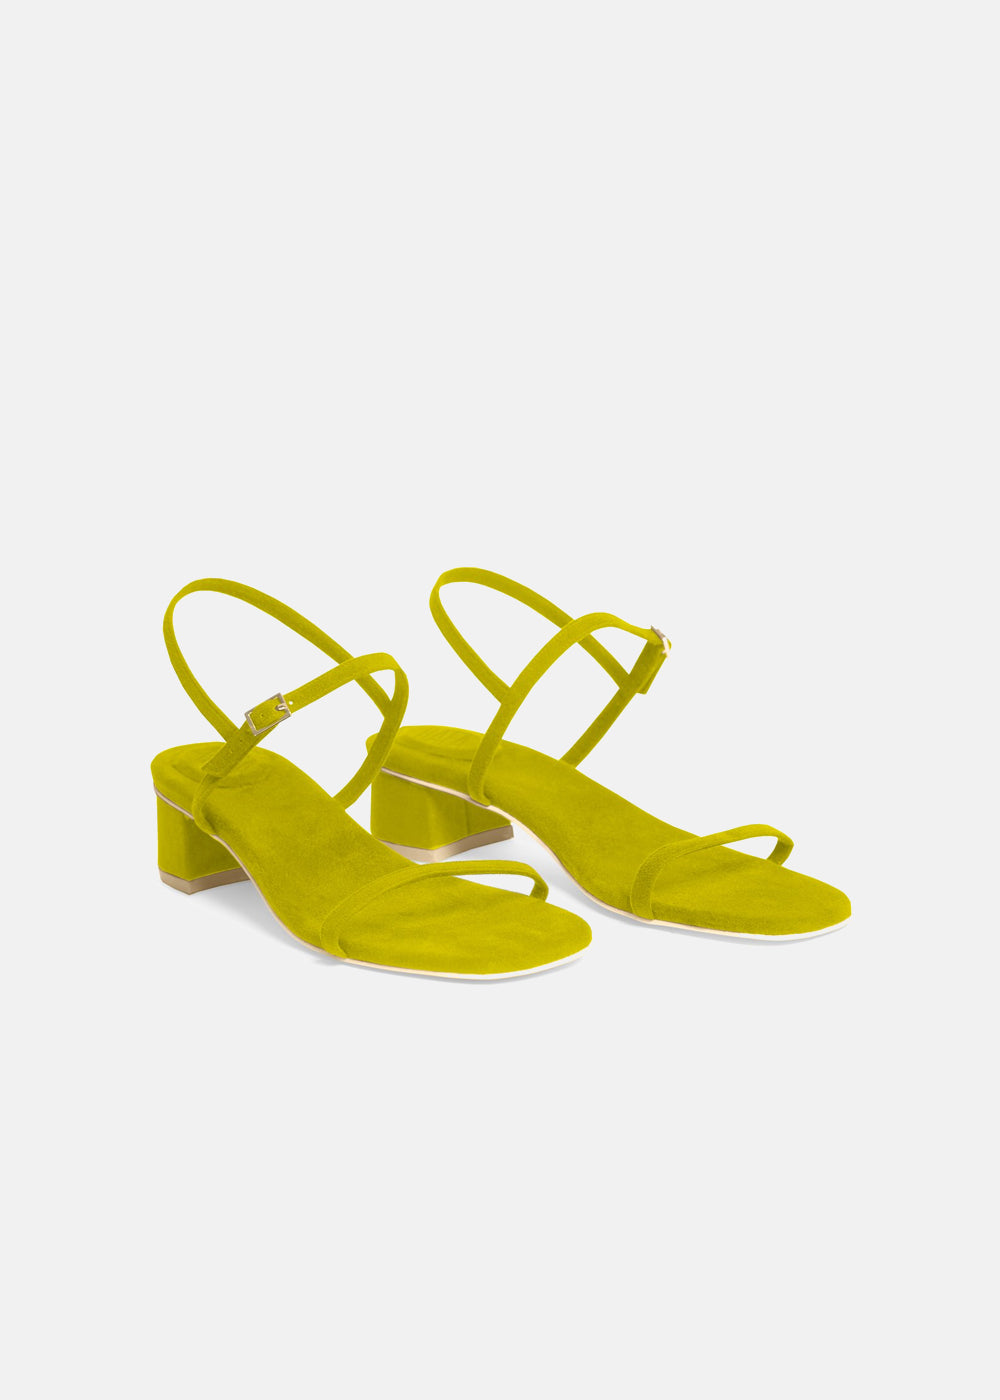 RAFA Milli Sandal in Citrine — Shop sustainable fashion and slow fashion at New Classics Studios